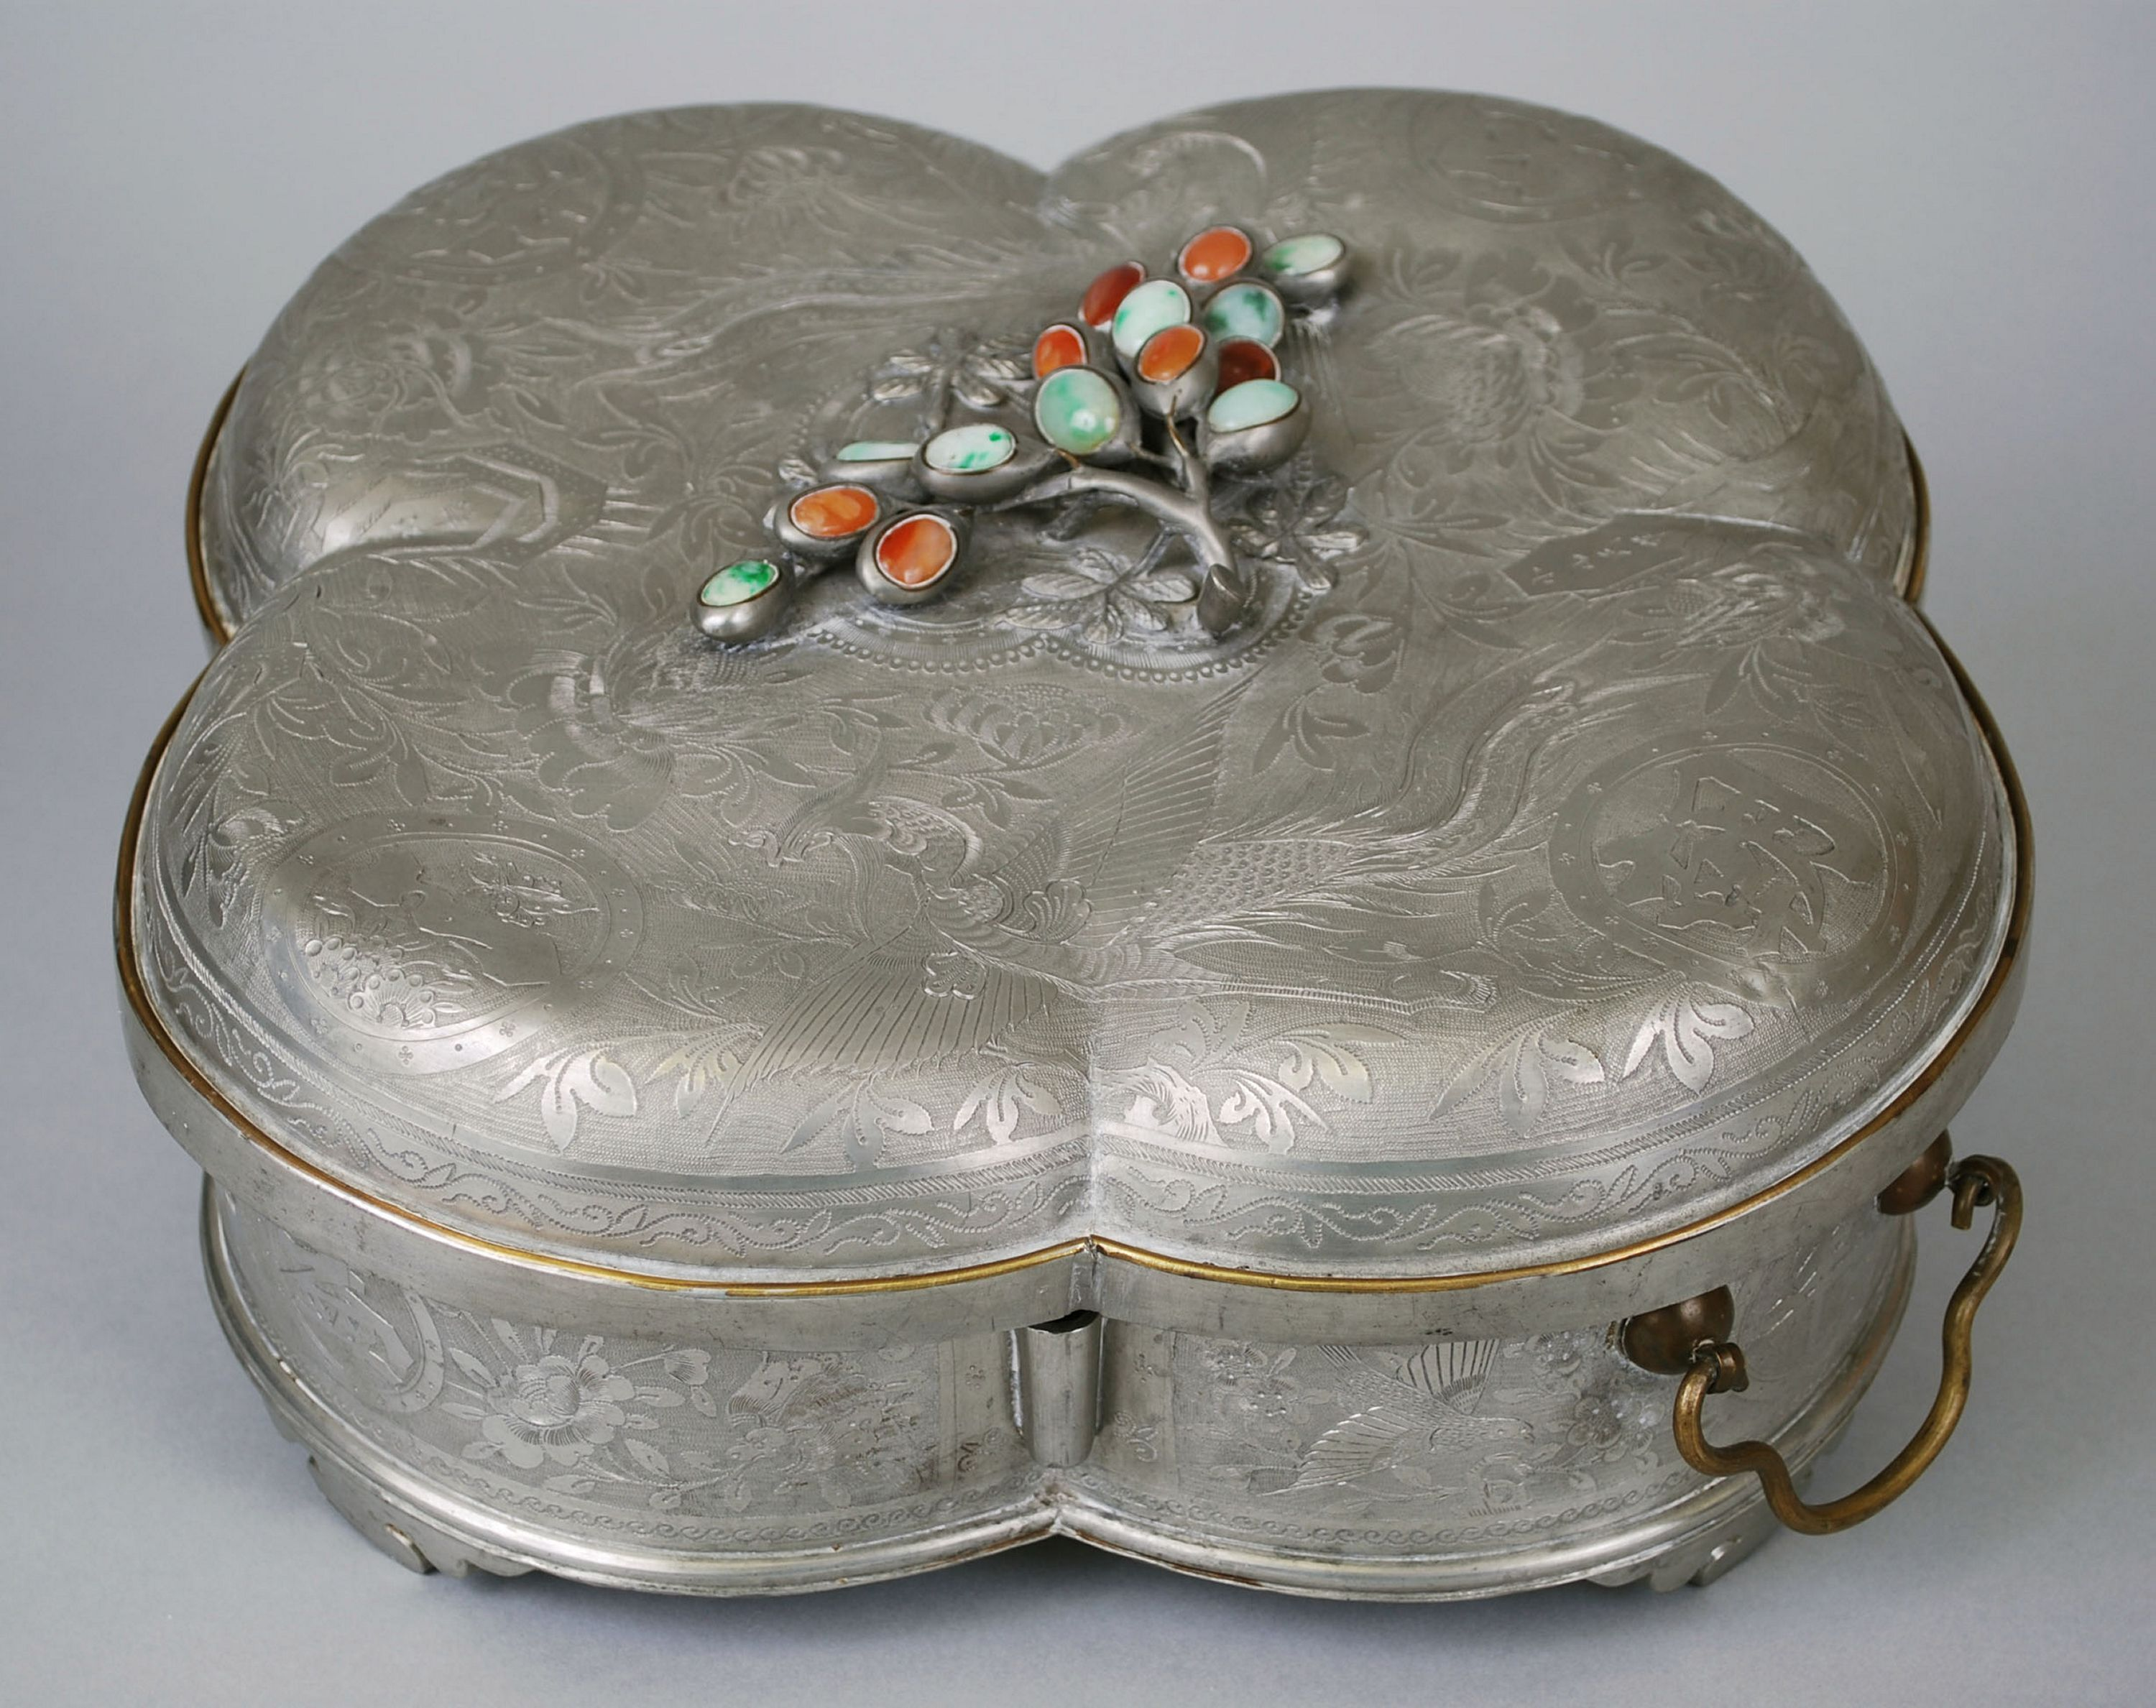 This piece is an elaborate covered wedding food box. Eating foods from these plates on a wedding day leads to a long, happy marriage. // Wedding Food Box, Xiaoshan Family, China, Qing Dynasty (1644-1912), 19th century. Collection of the Art Fund, Inc. at the BMA. Gift of Bayard Shields Tynes and Carolyn Dickinson Tynes. AFI37.2009.1A-B-.5.1-.4.